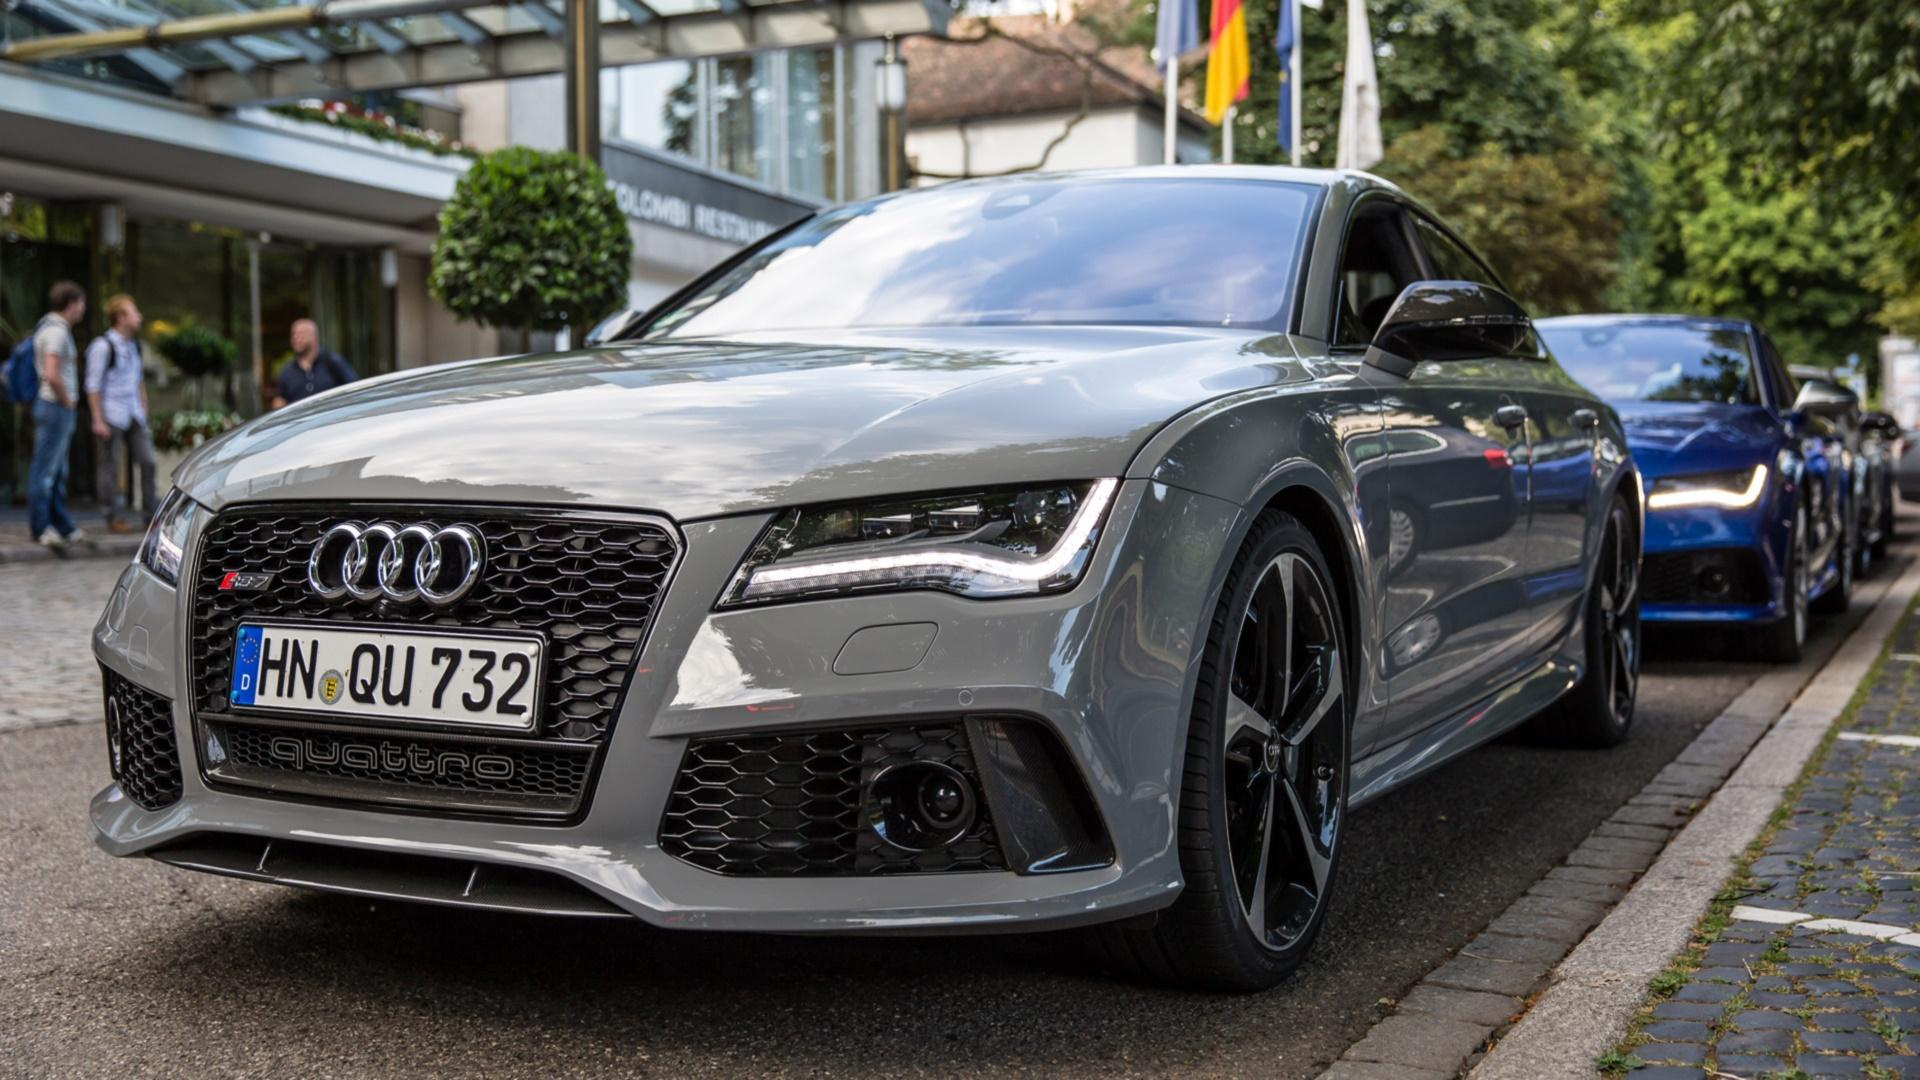 2014 Audi RS7 Wallpapers HD Download